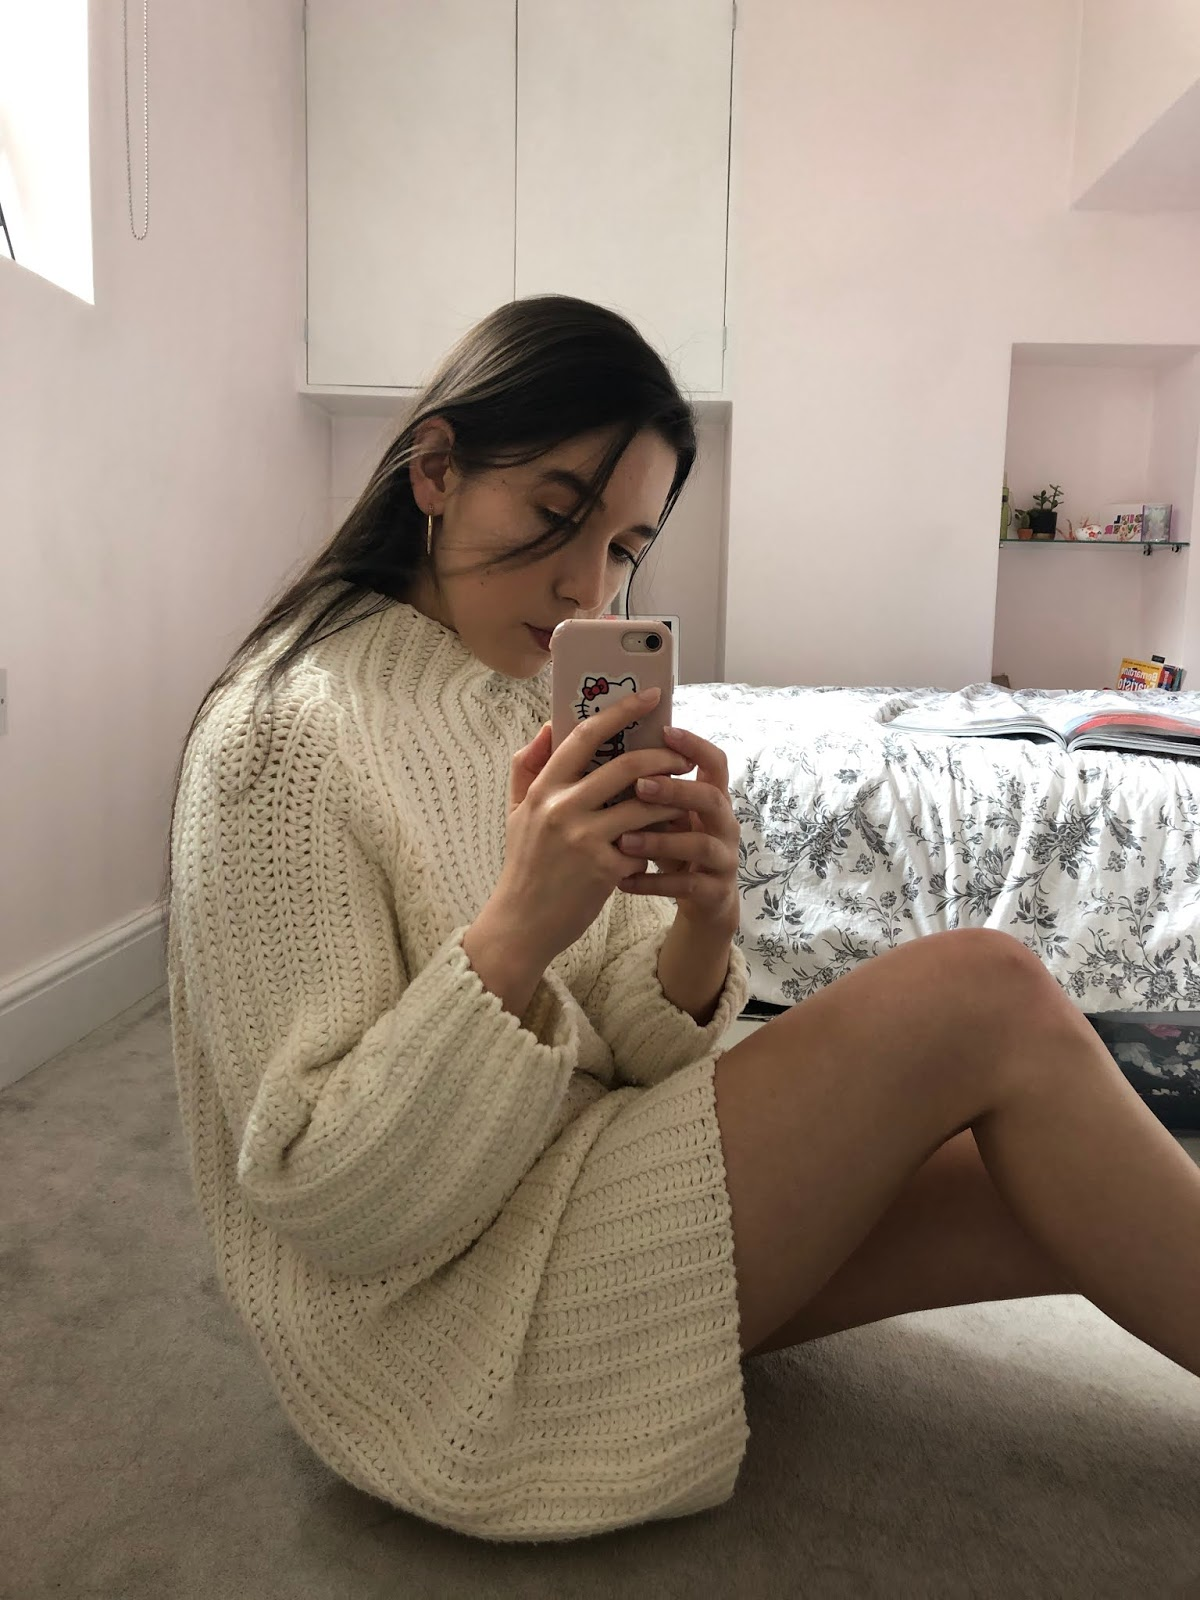 OOTD, outfit, fashion, style, blogger, jumper dress